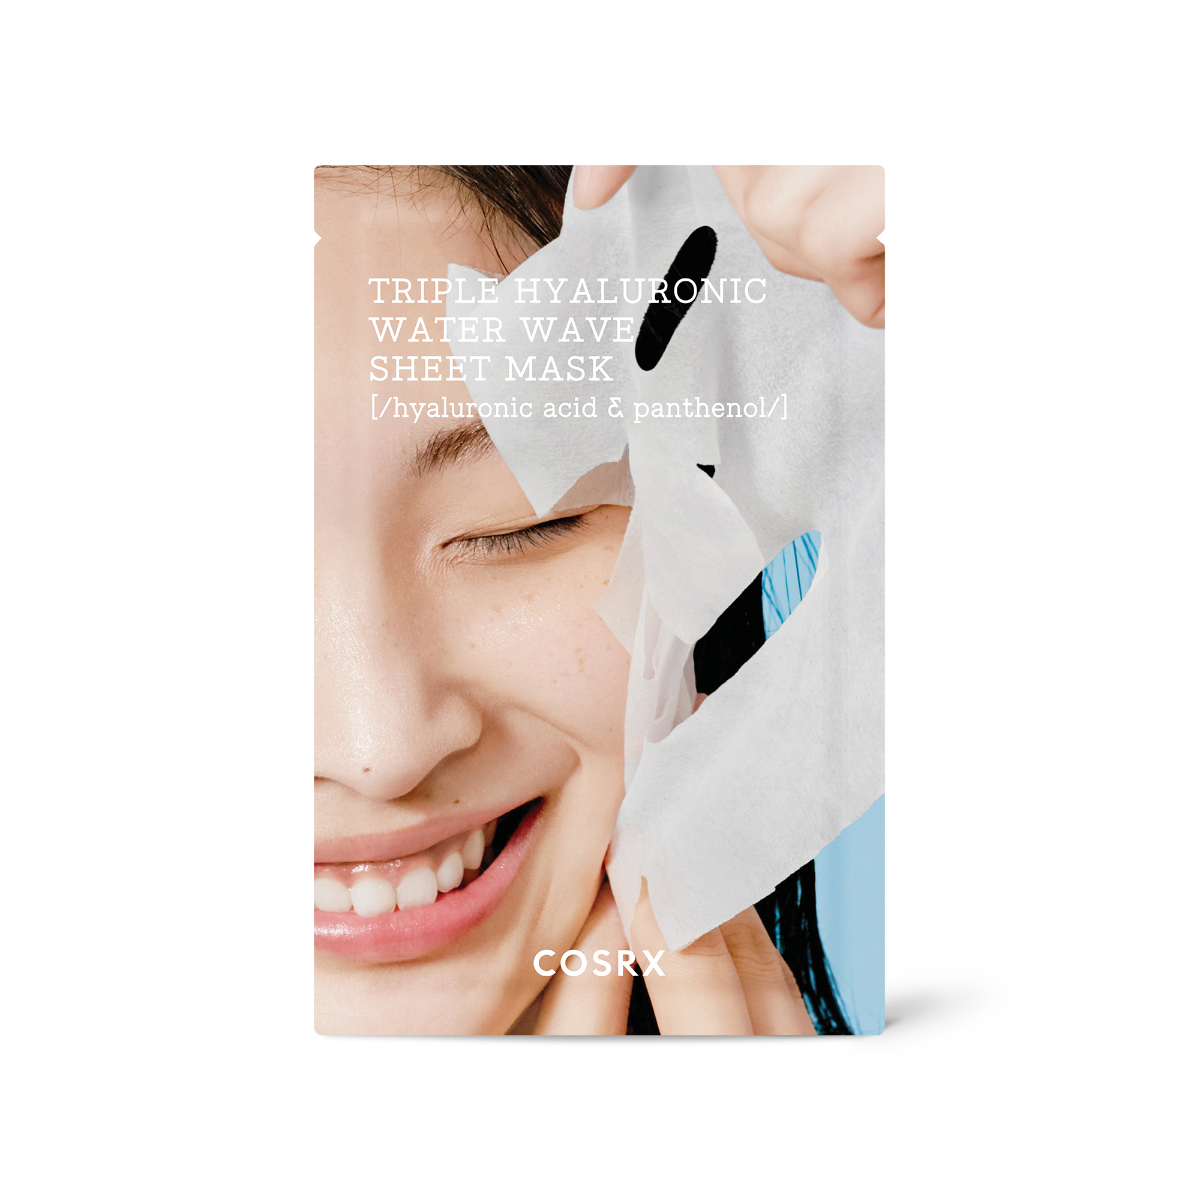 Hydrium Triple Hyaluronic Water Wave Sheet Mask